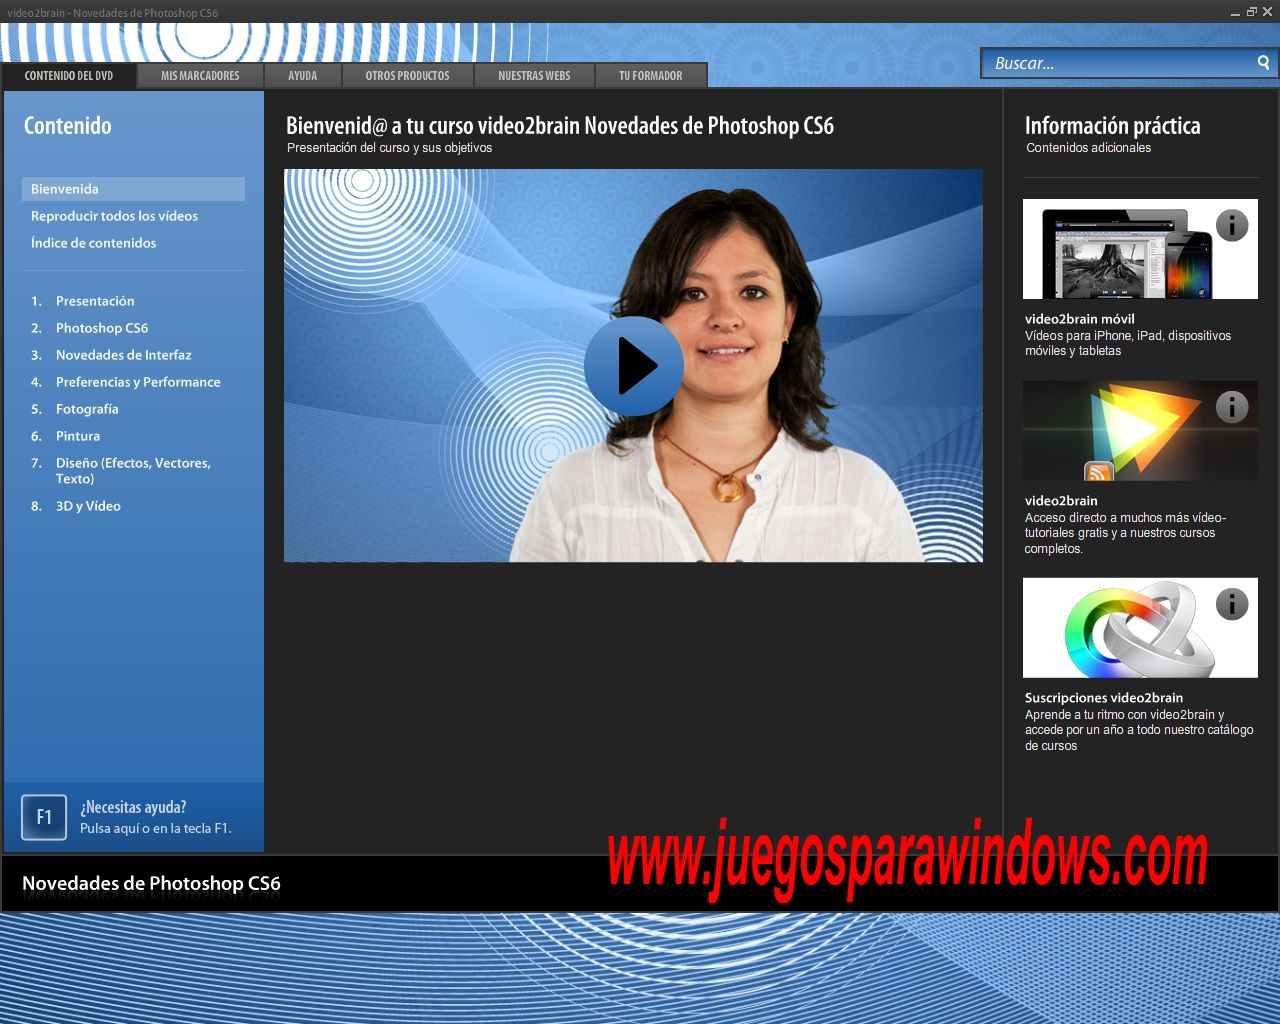 video2brain novedades de adobe photoshop cs6 descargar curso mediafire